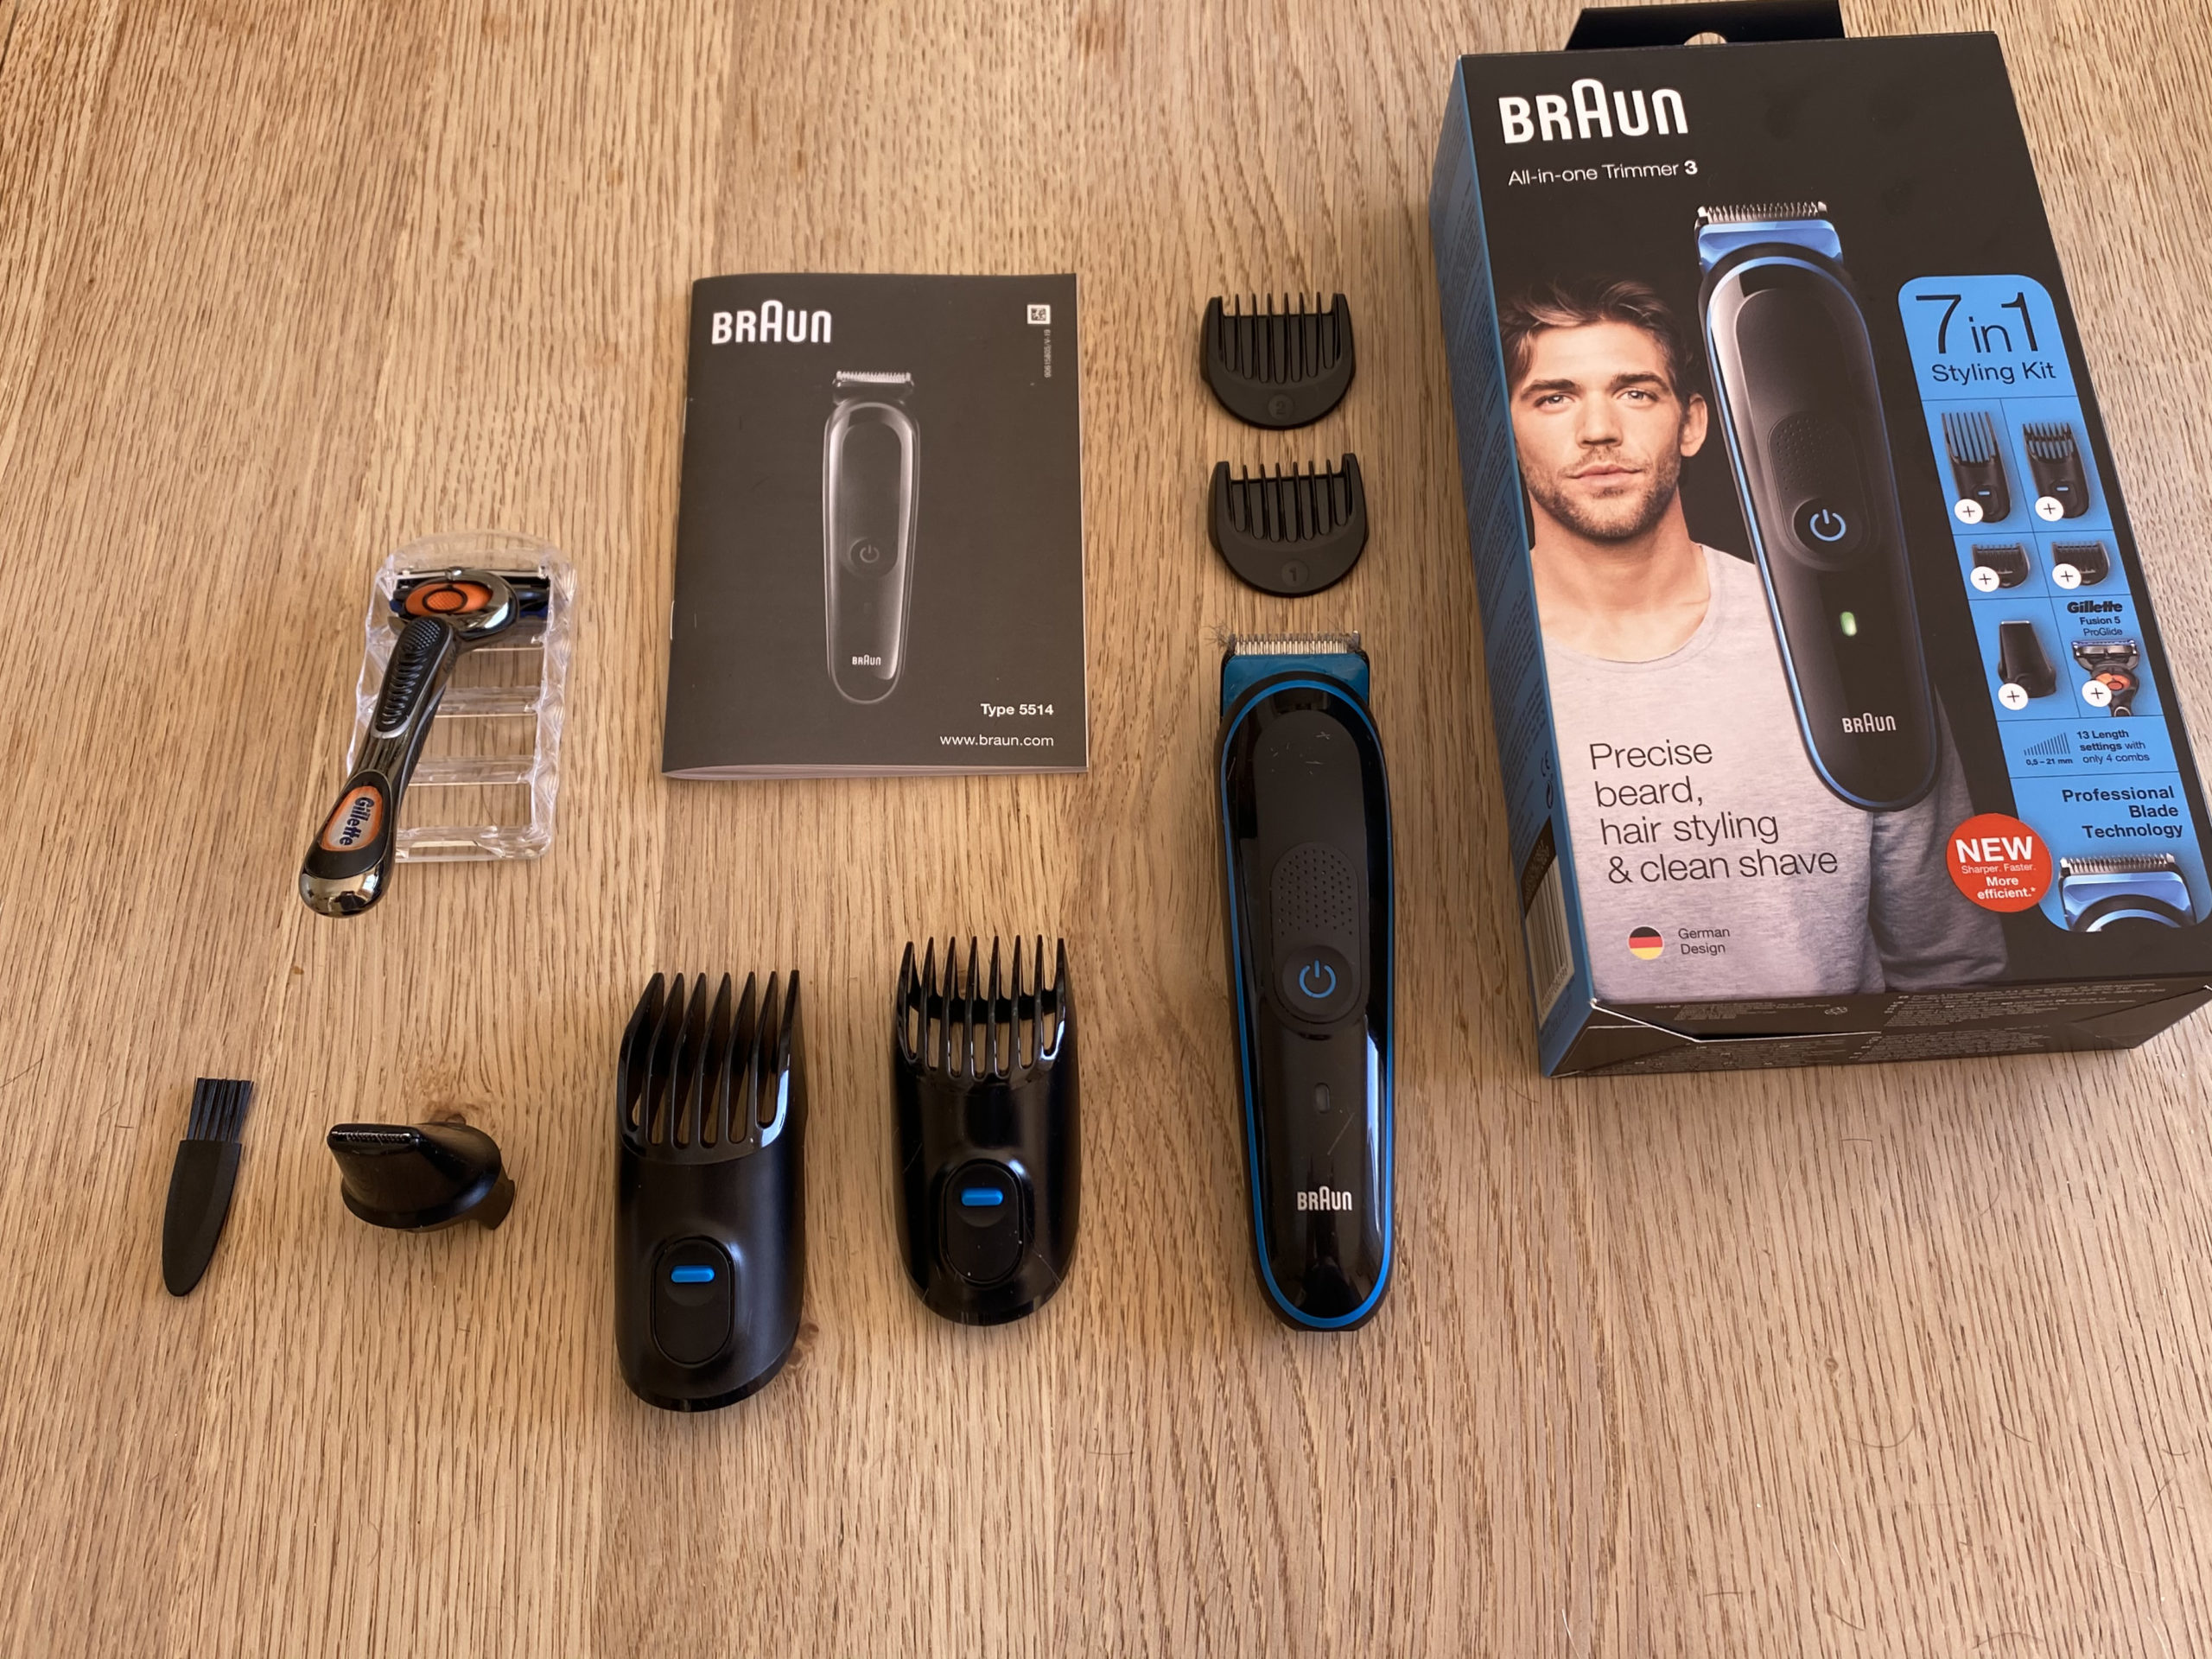 Braun All in One Trimmer 3.